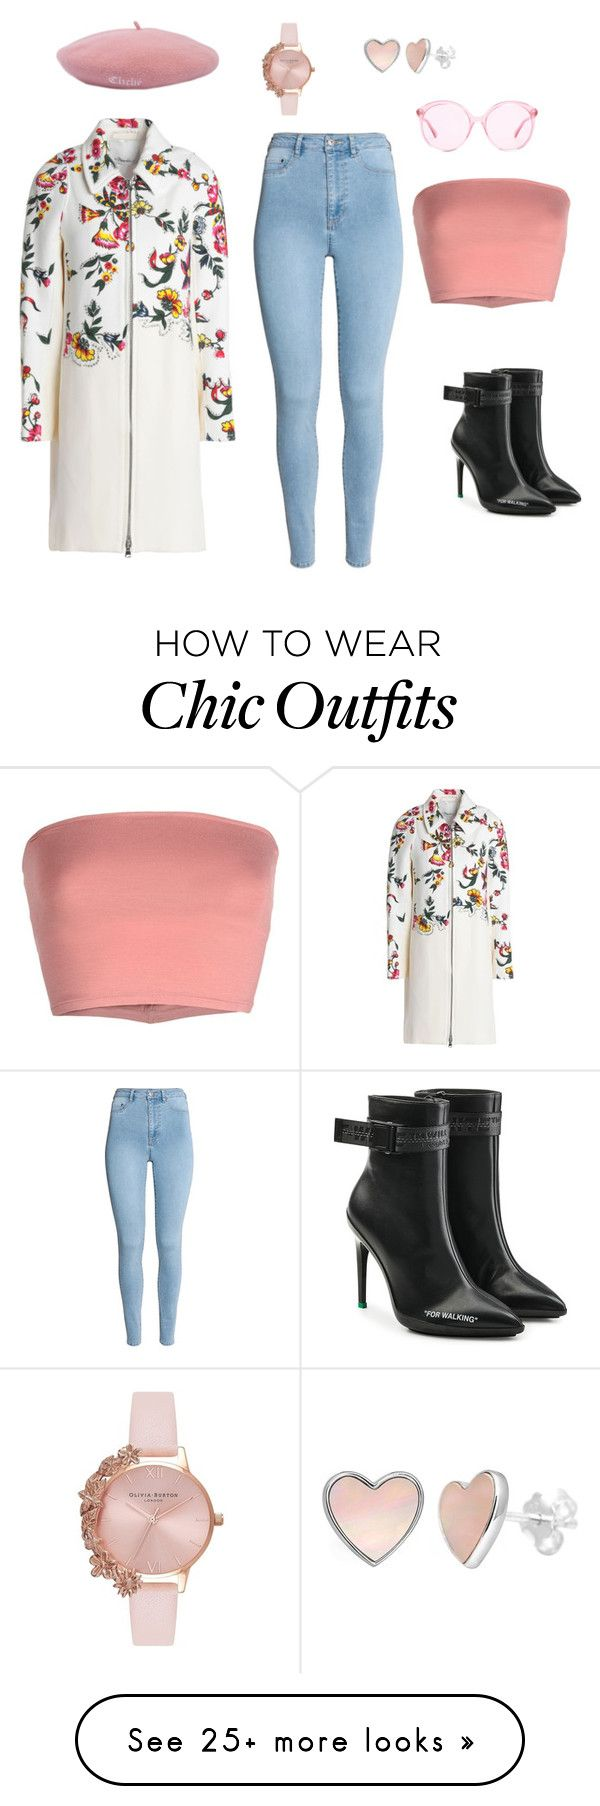 """""""Looking Chic!"""" by daleneekirapa on Polyvore featuring Off-White, Annarita N., 3.1 Phillip Lim, Gucci and Olivia Burton"""